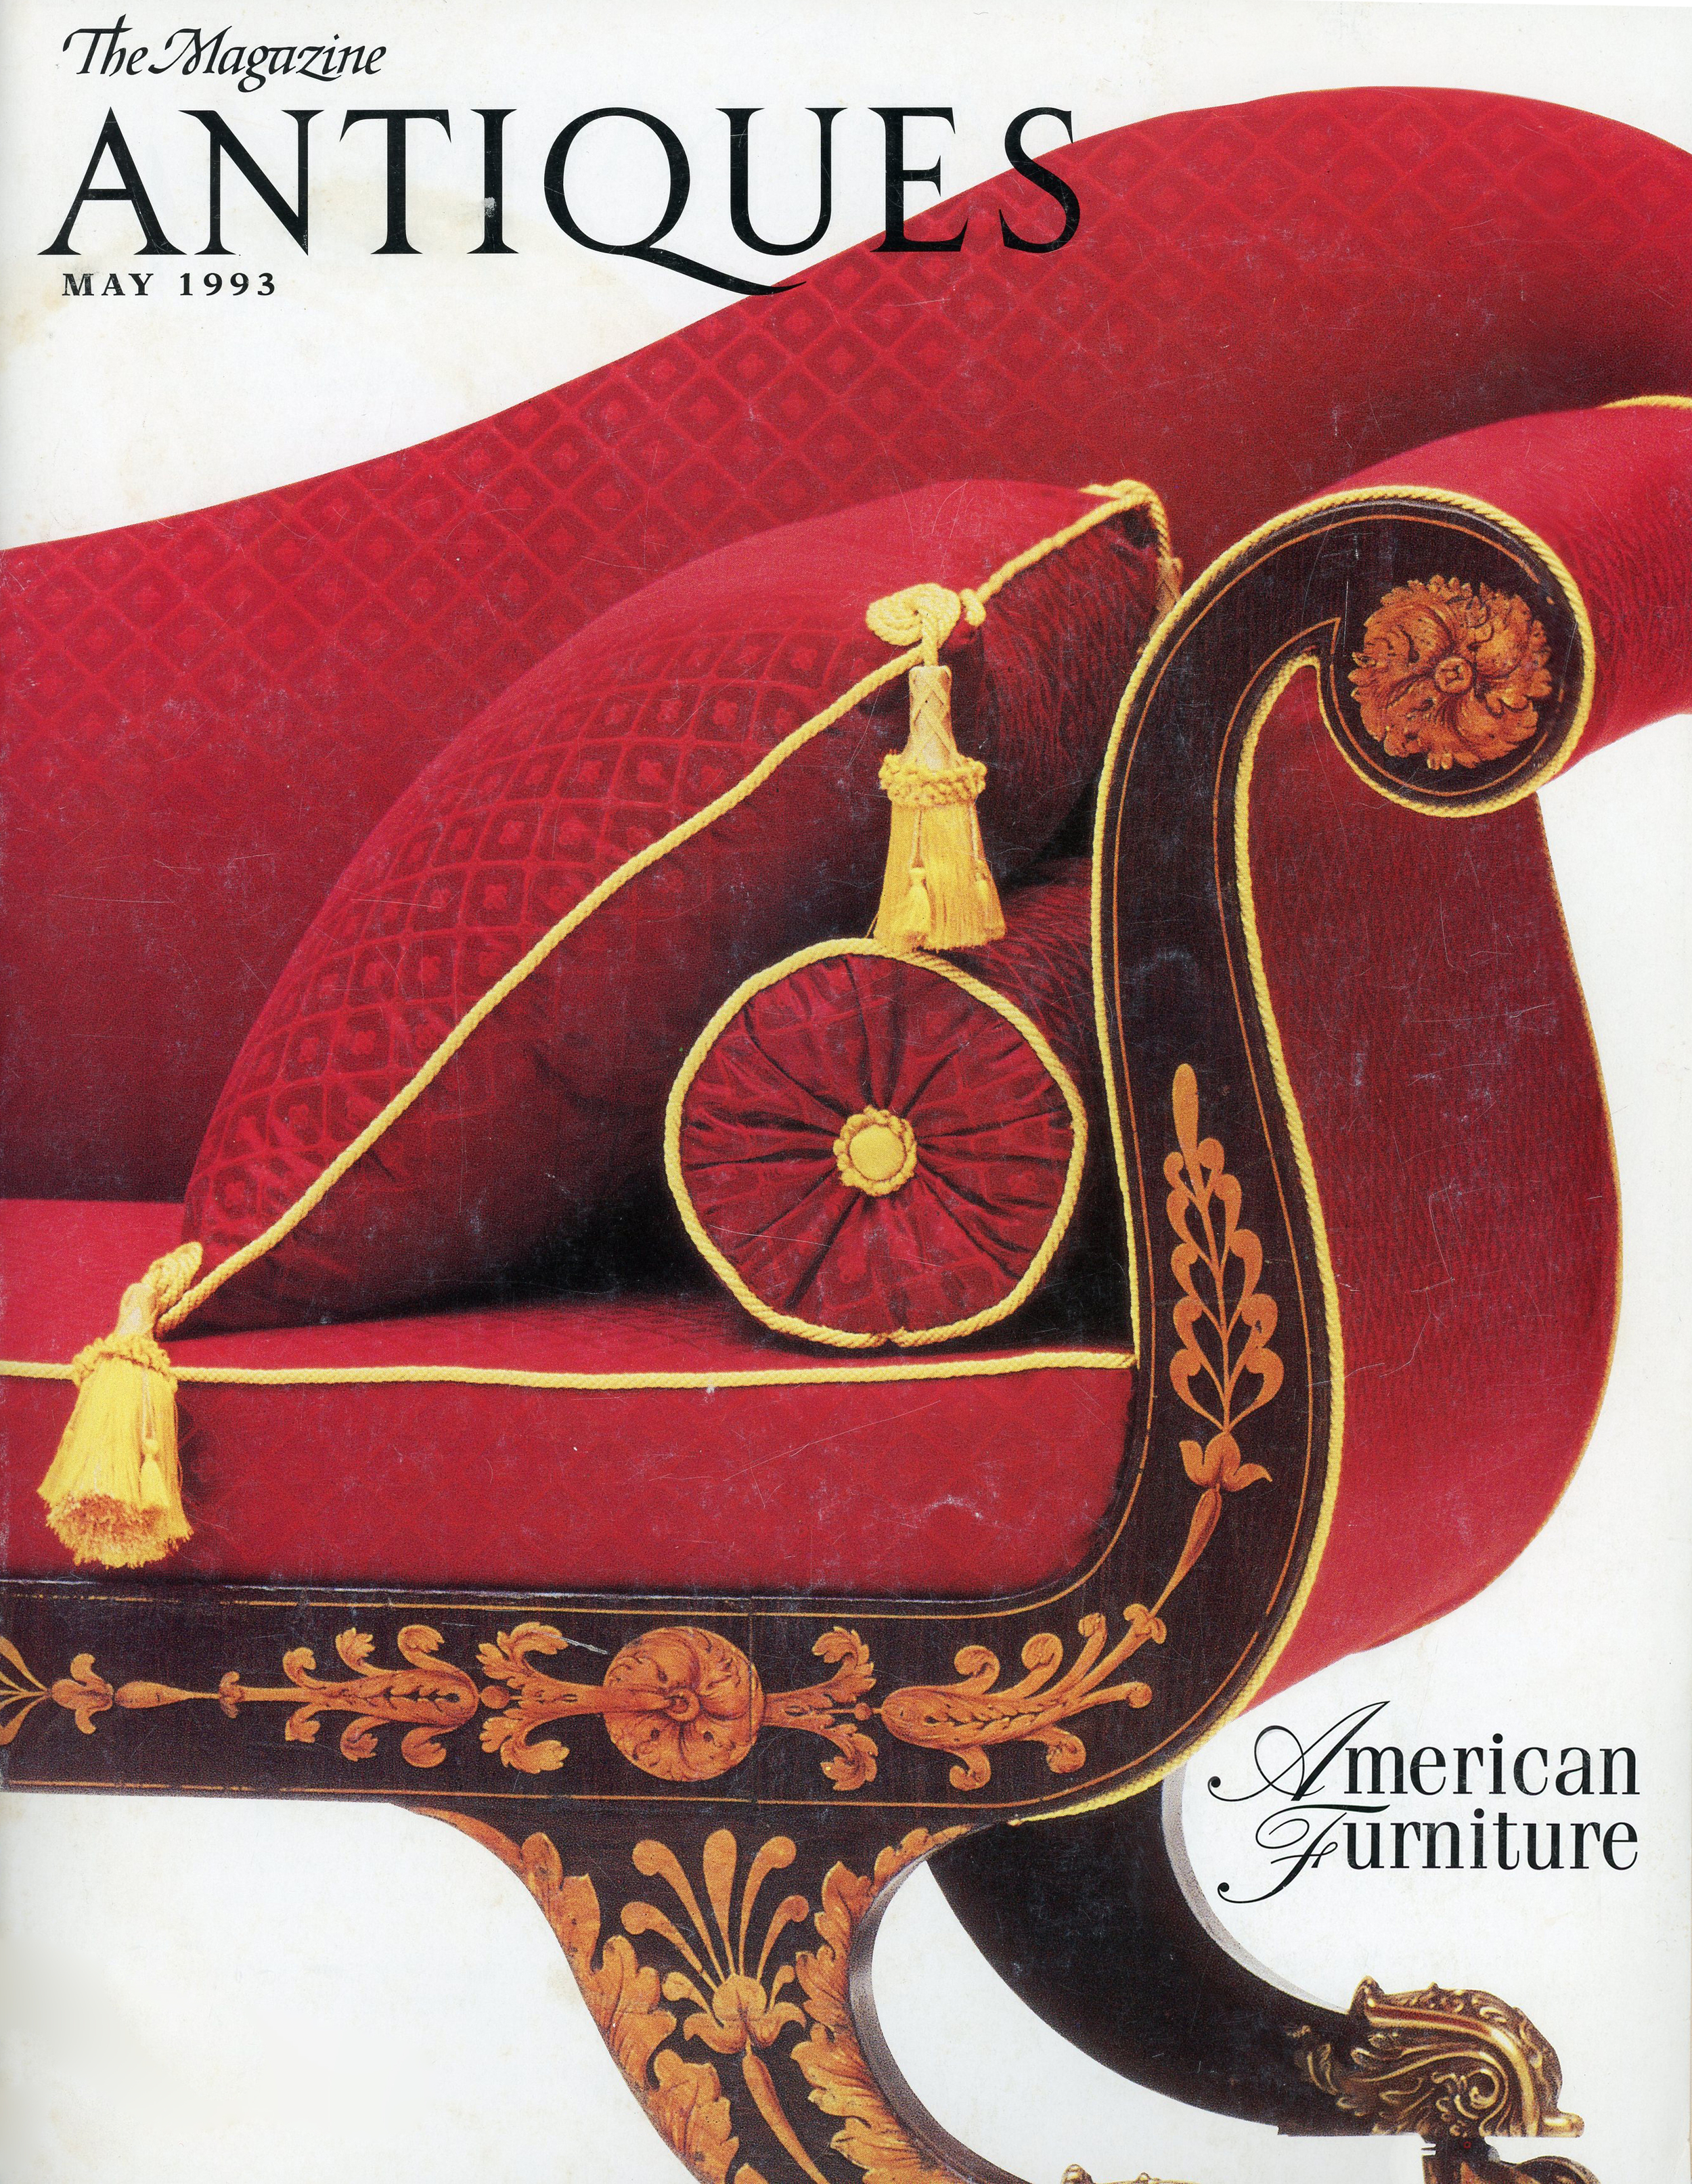 Antiques mag cover.jpg